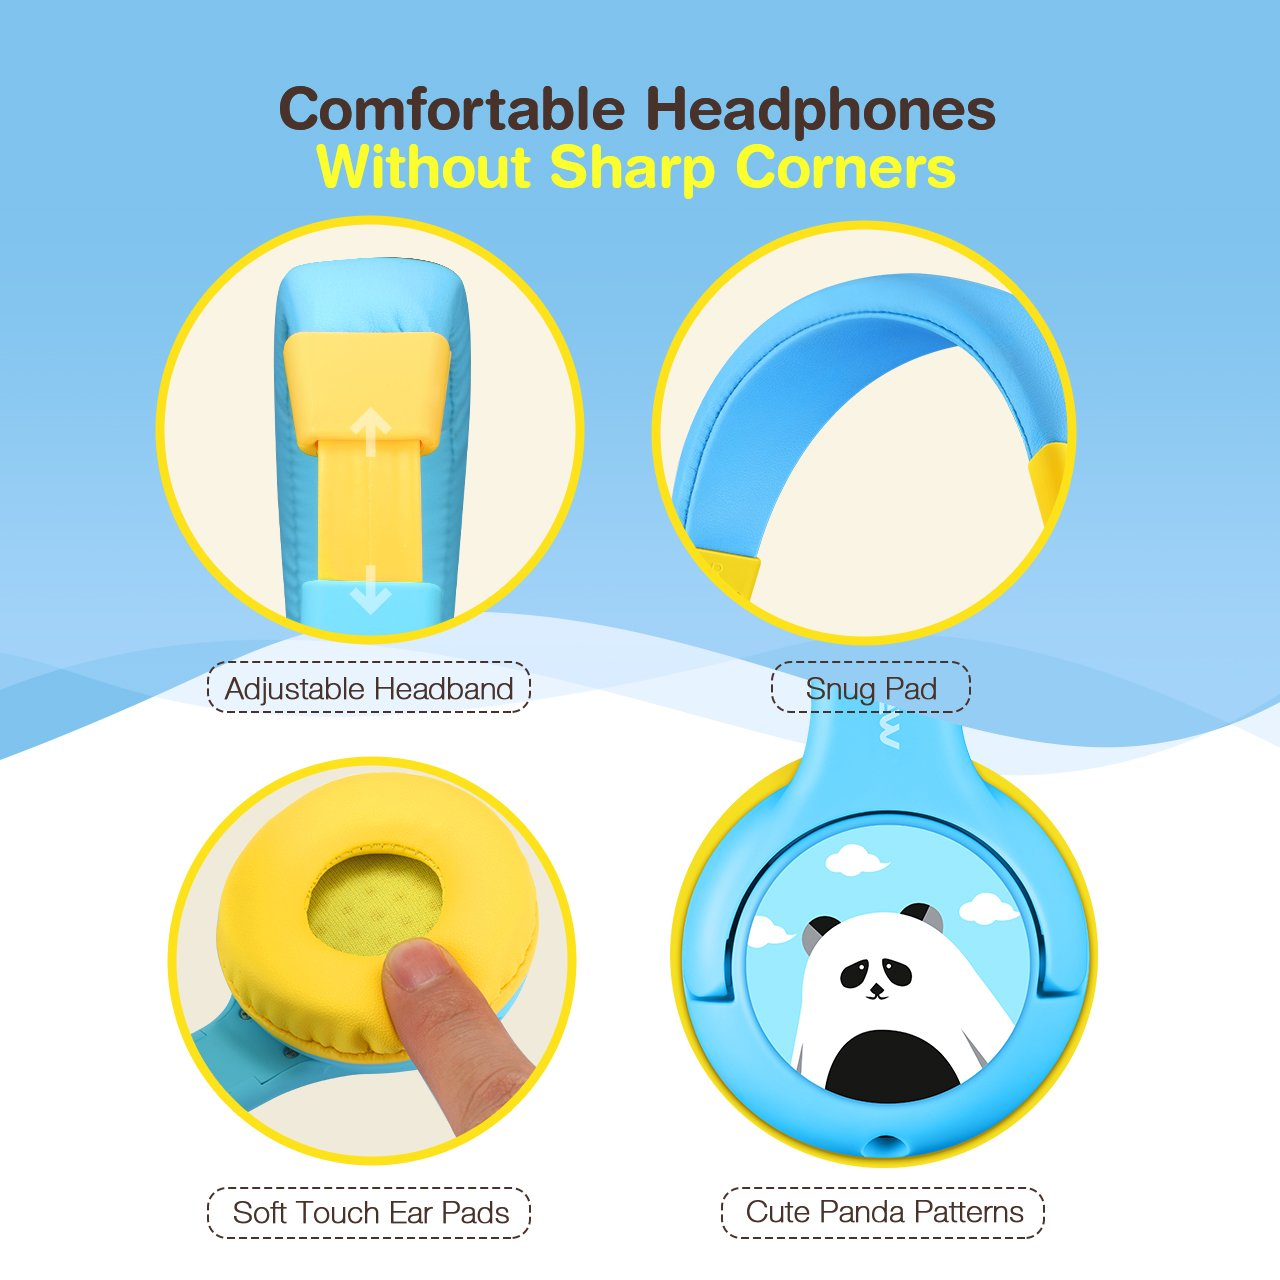 Mpow Kids Headphones with 85dB Volume Limited Hearing Protection & Music Sharing Function, Kids Friendly Safe Food Grade Material, Tangle-Free Cord, Wired On-Ear Headphones for Children Toddler Baby by Mpow (Image #4)